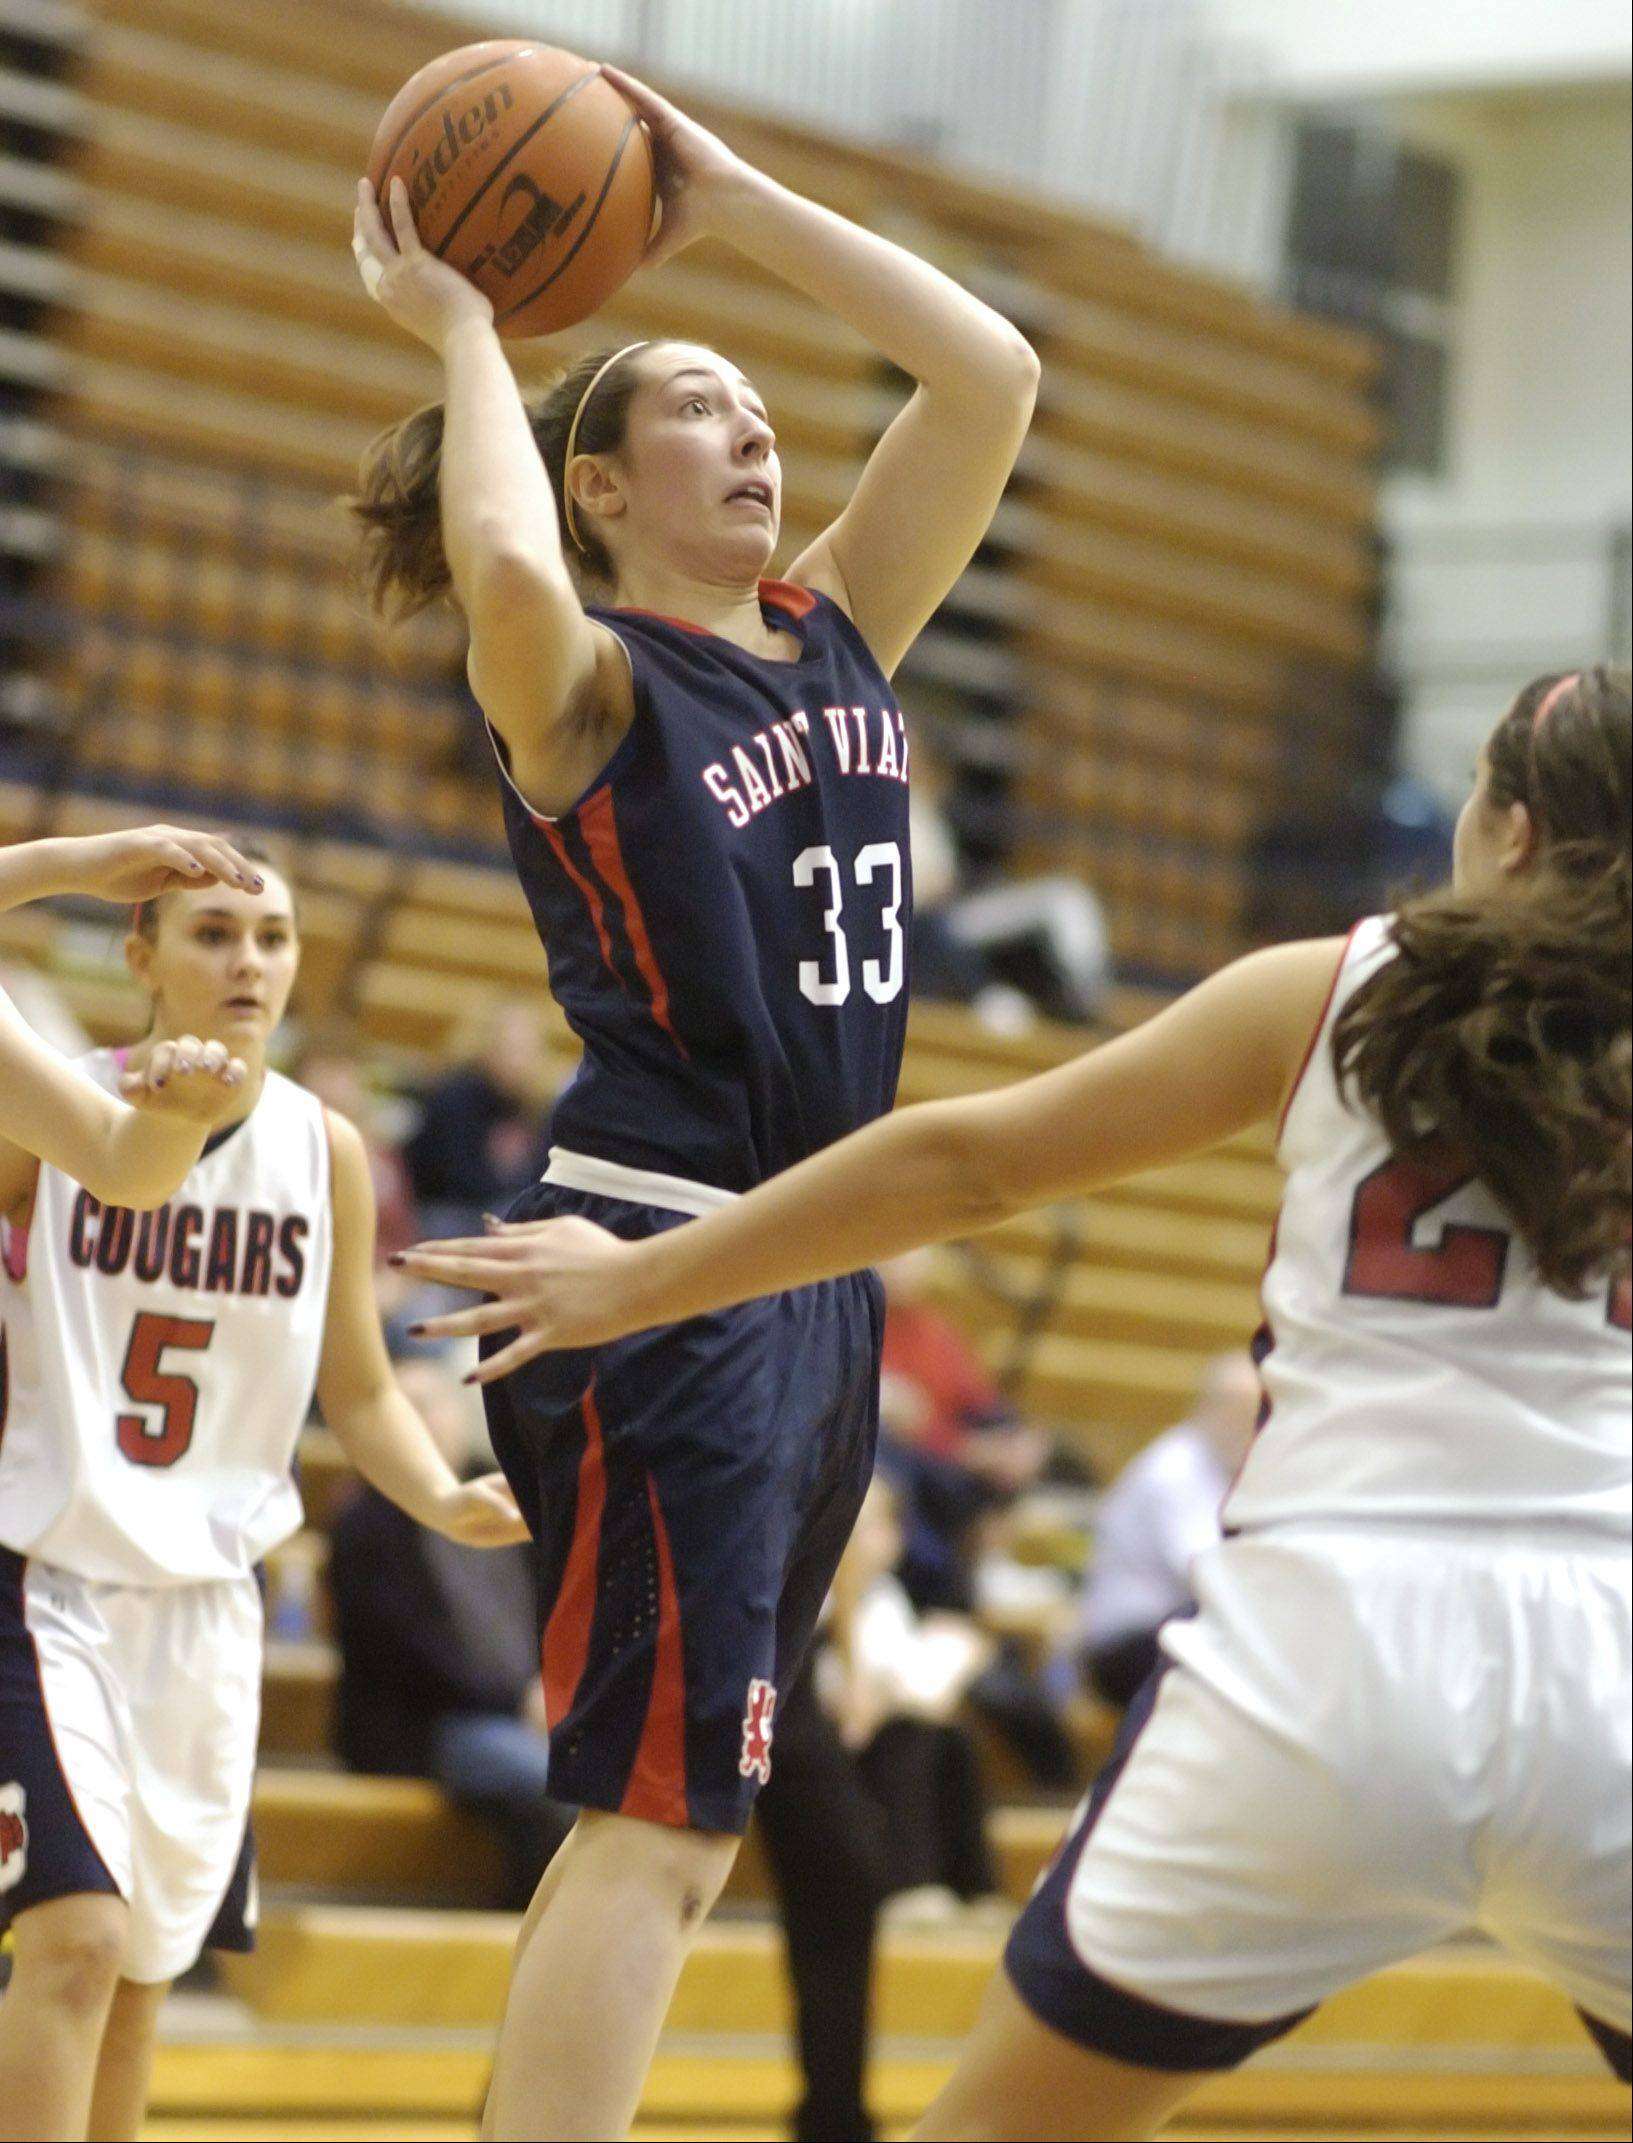 St. Viator's Morgan Hess takes a shot over Conant's Natalie Kutrumanes, right, during Tuesday's basketball game in Hoffman Estates.